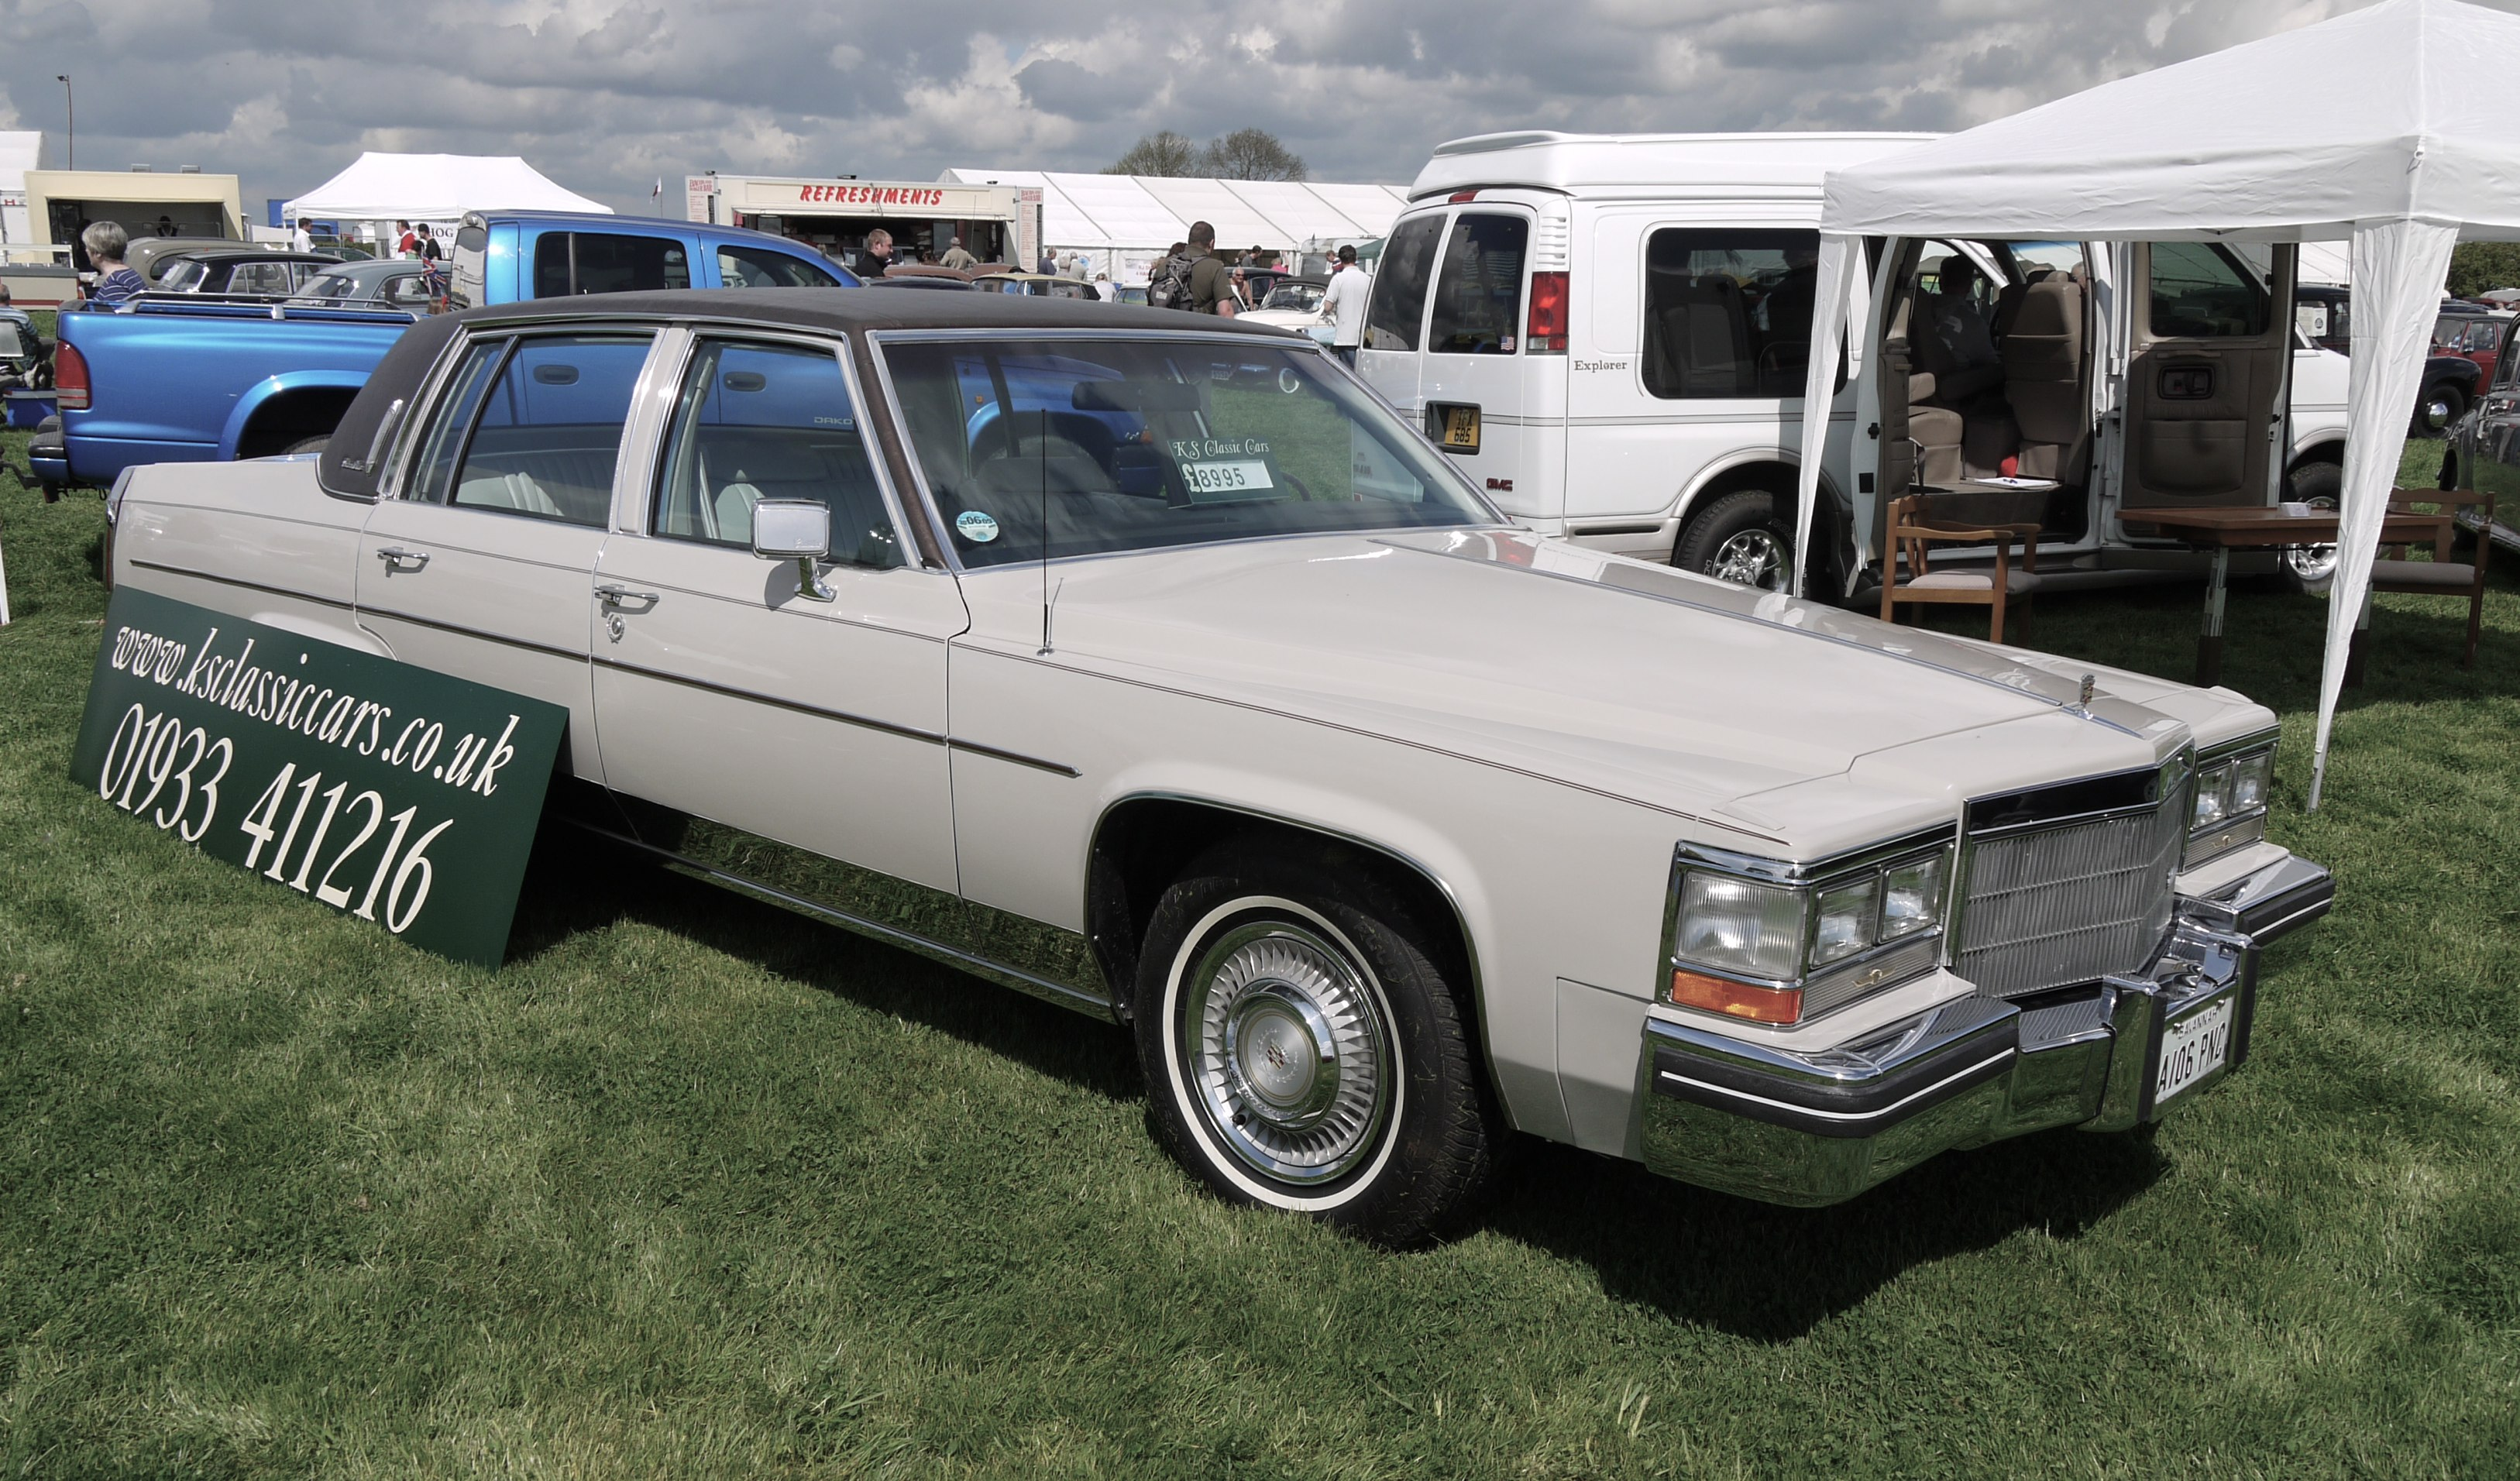 File:Cadillac 1984 - Flickr - mick - Lumix.jpg - Wikimedia Commons